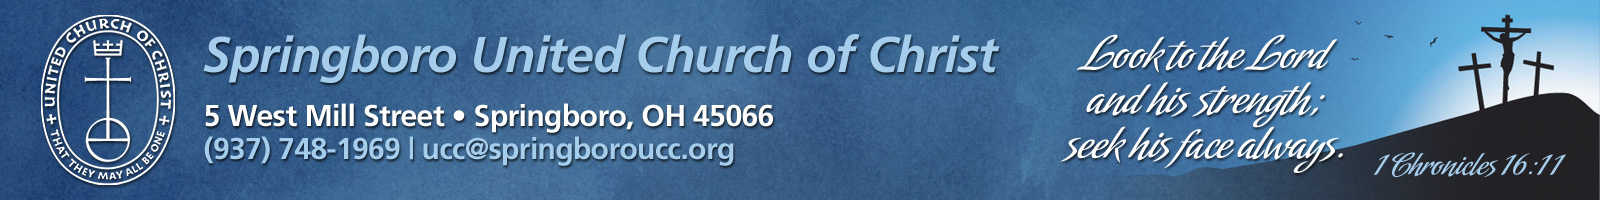 Springboro United Church of Christ Logo